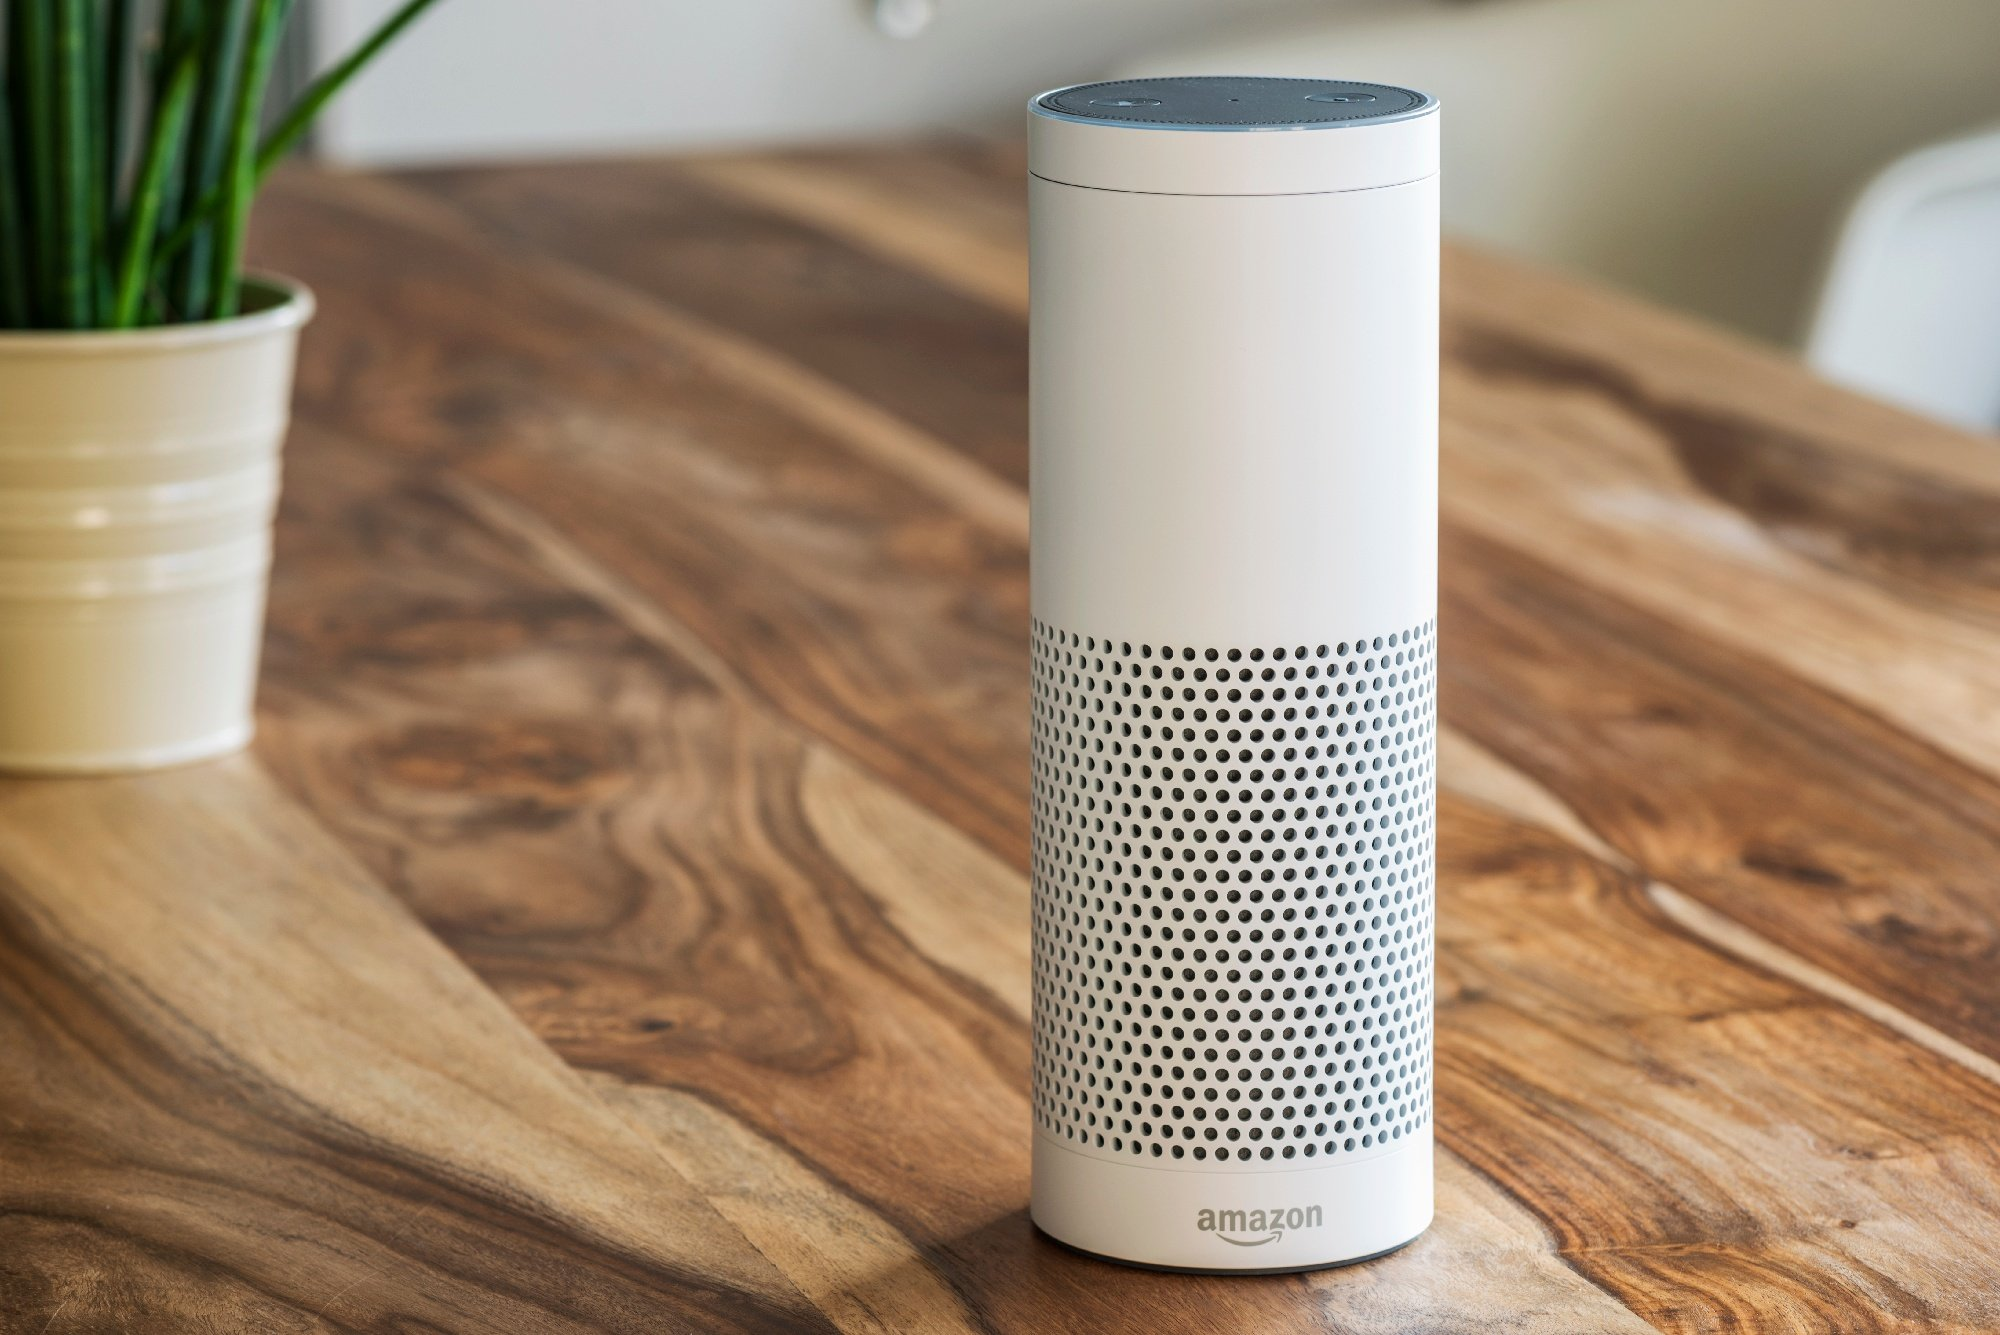 Alexa enabled speaker